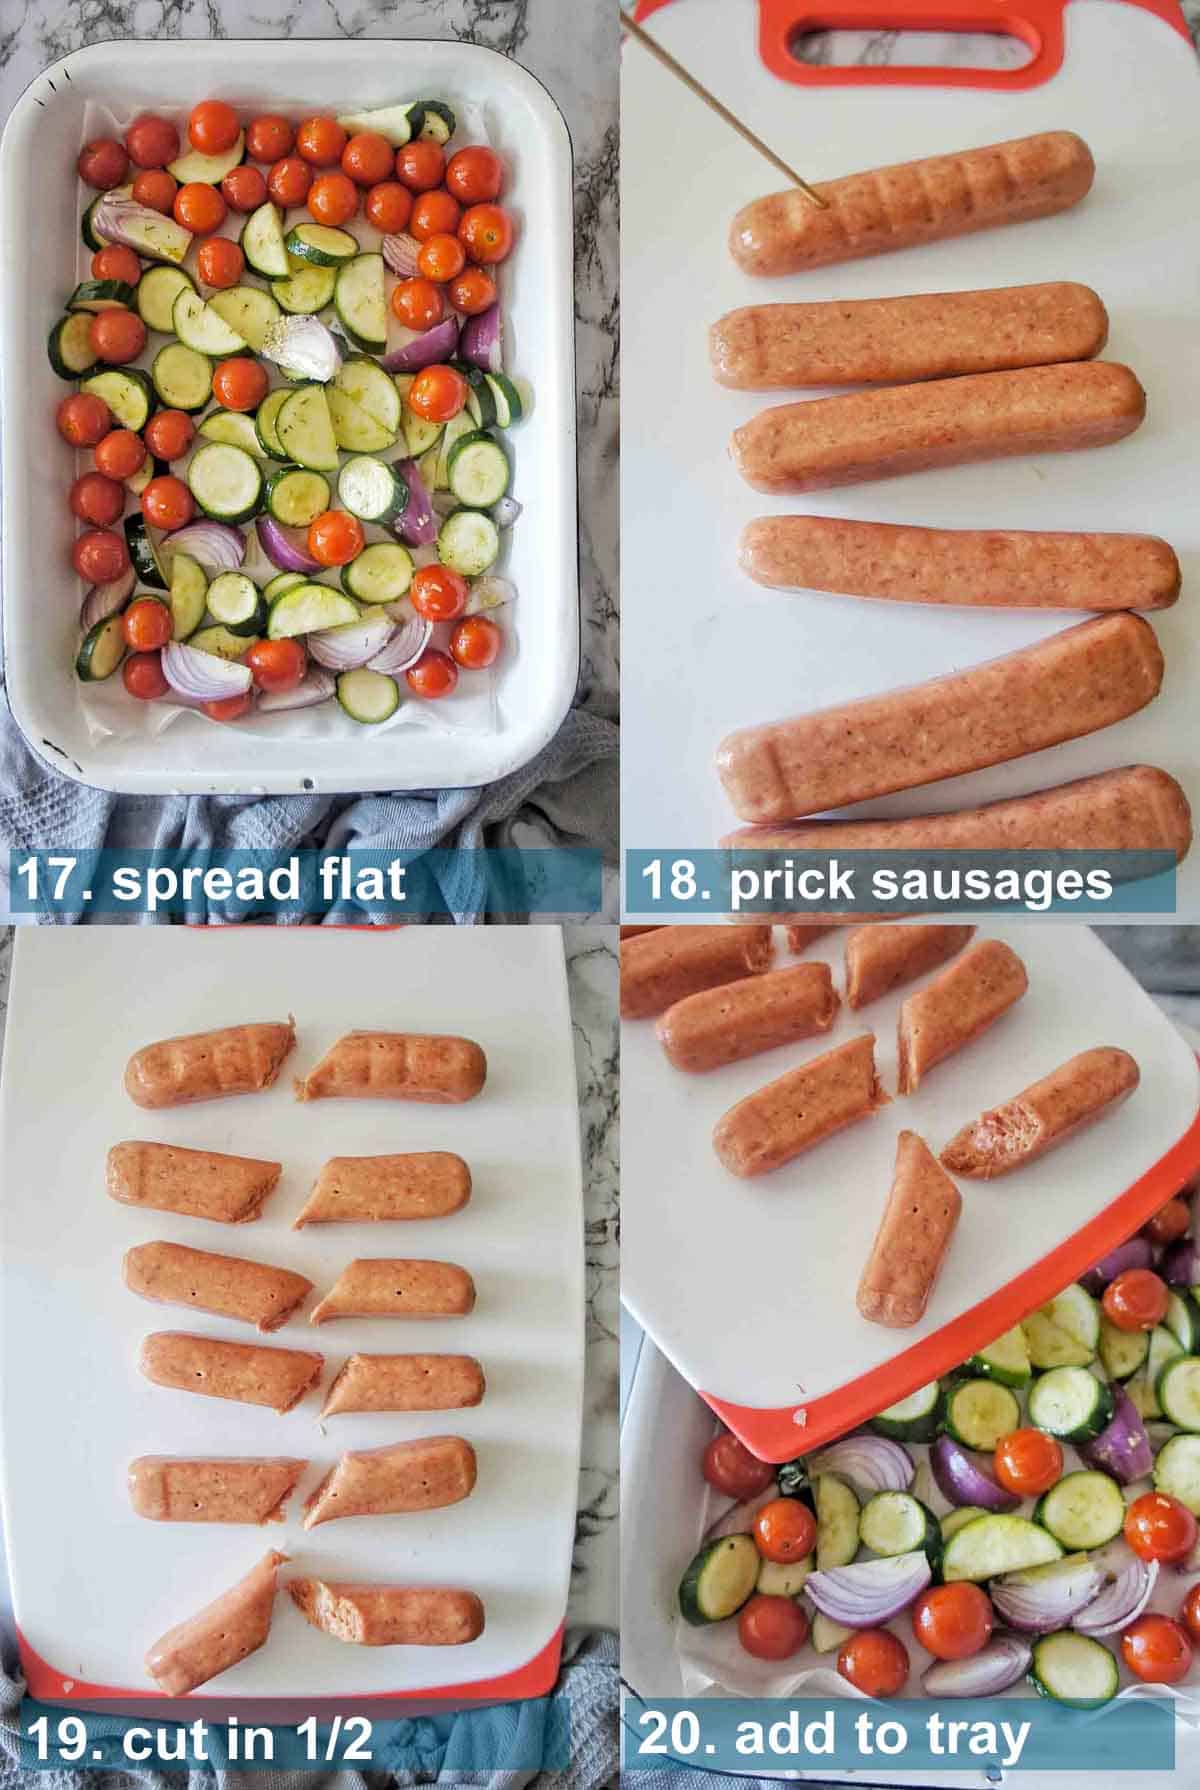 Sausage Bake method 17 to 20 with text labels